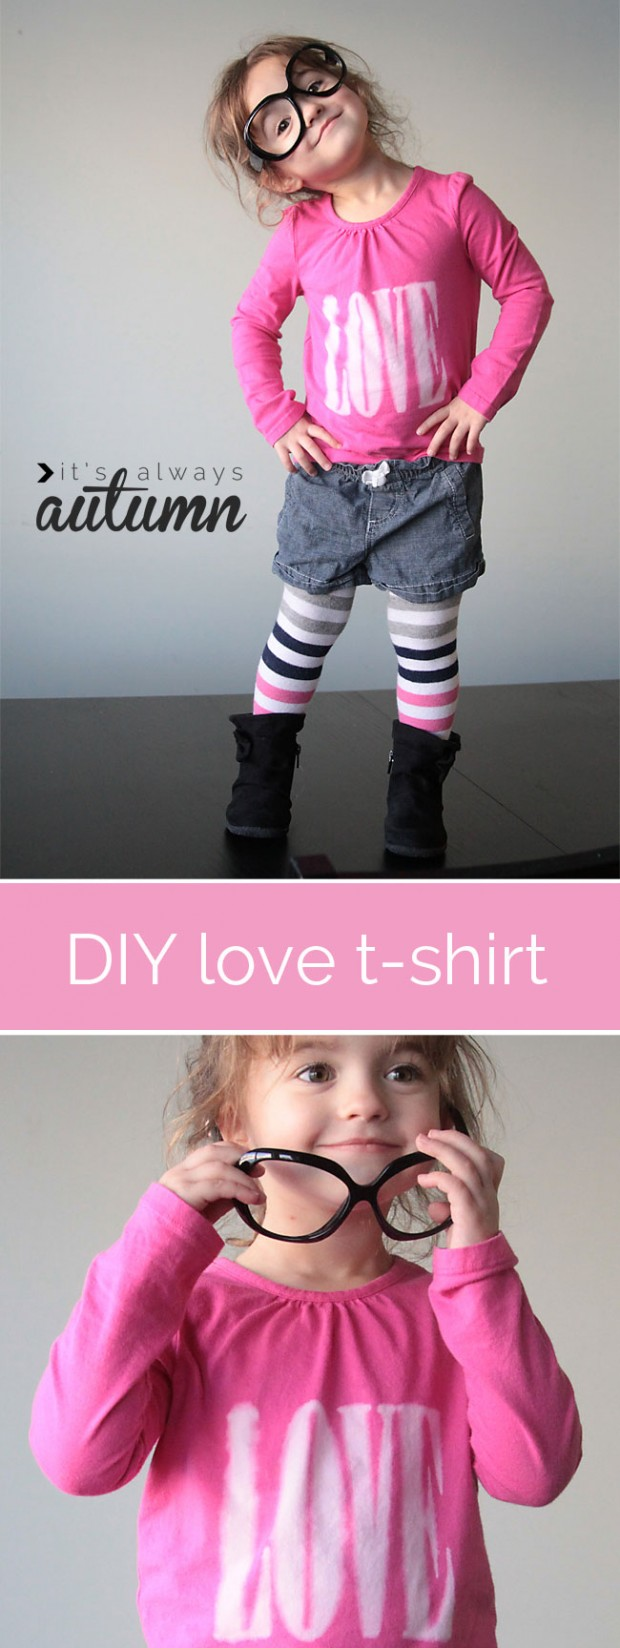 18 Adorable DIY Clothing Projects for Your Little Ones  (14)